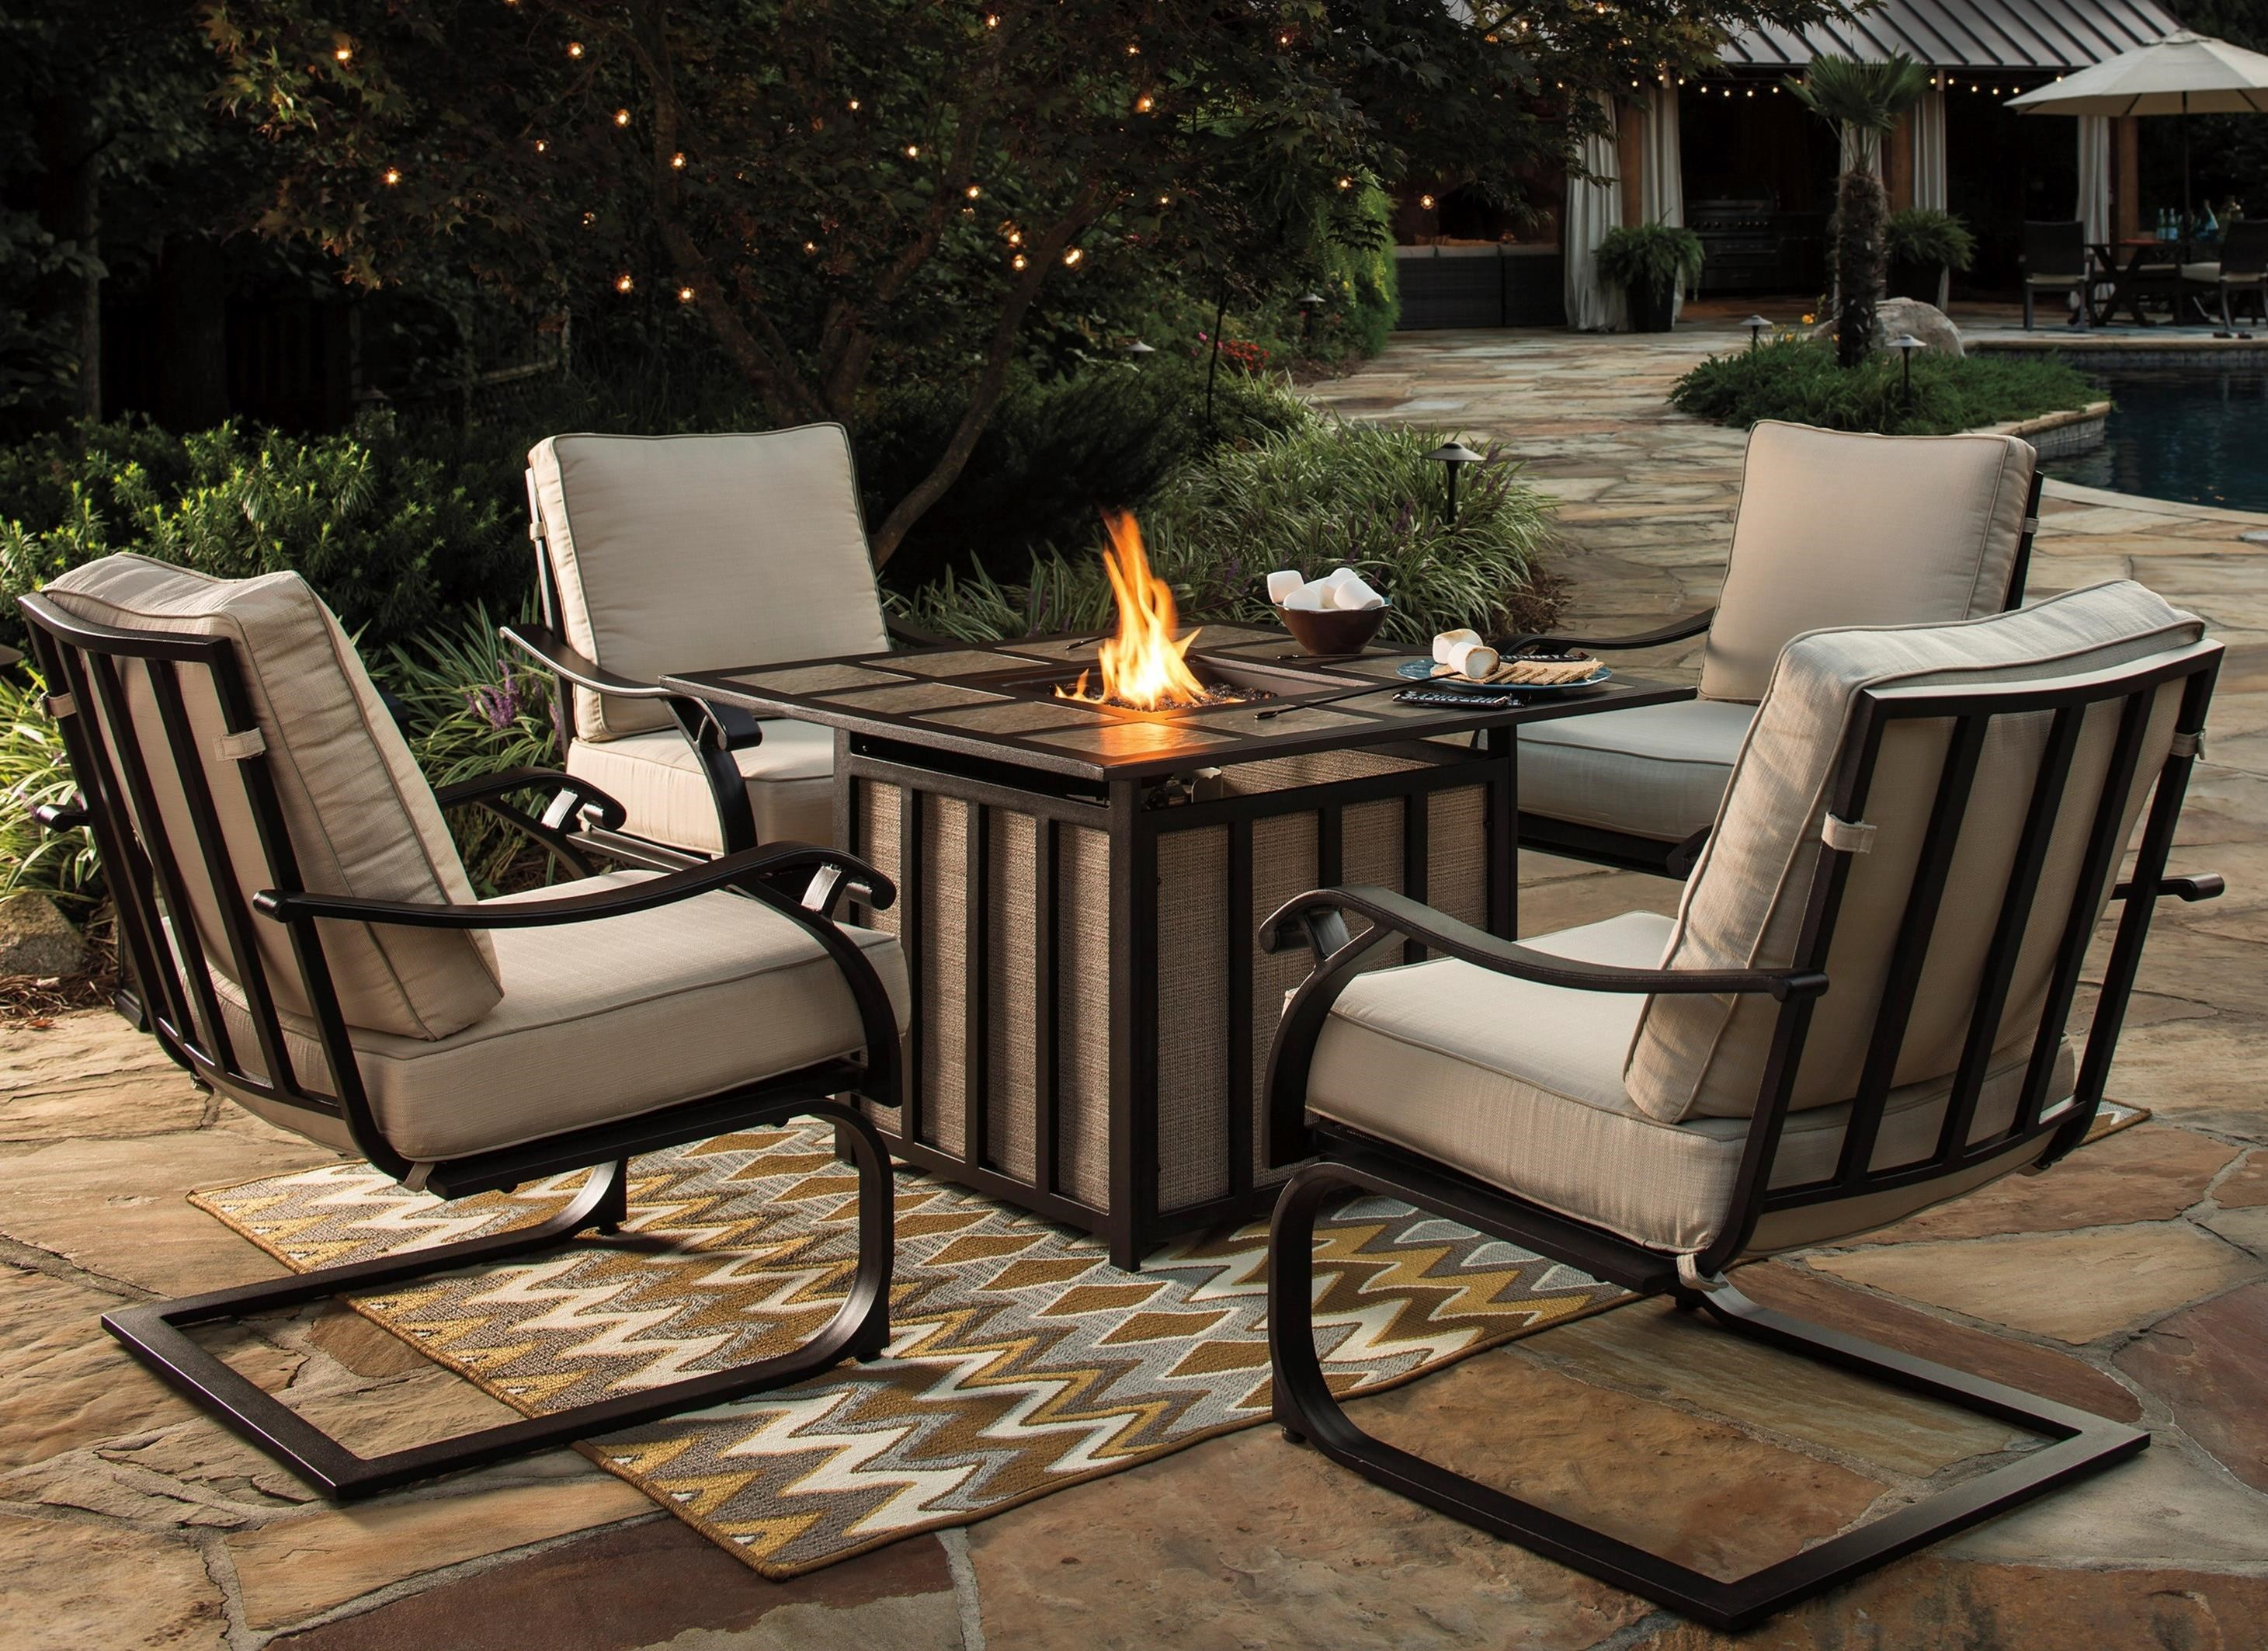 Elegant Signature Design By Ashley Wandon Outdoor 5 Piece Fire Pit Table Set   John  V Schultz Furniture   Outdoor Conversation Sets/Outdoor Chat Sets